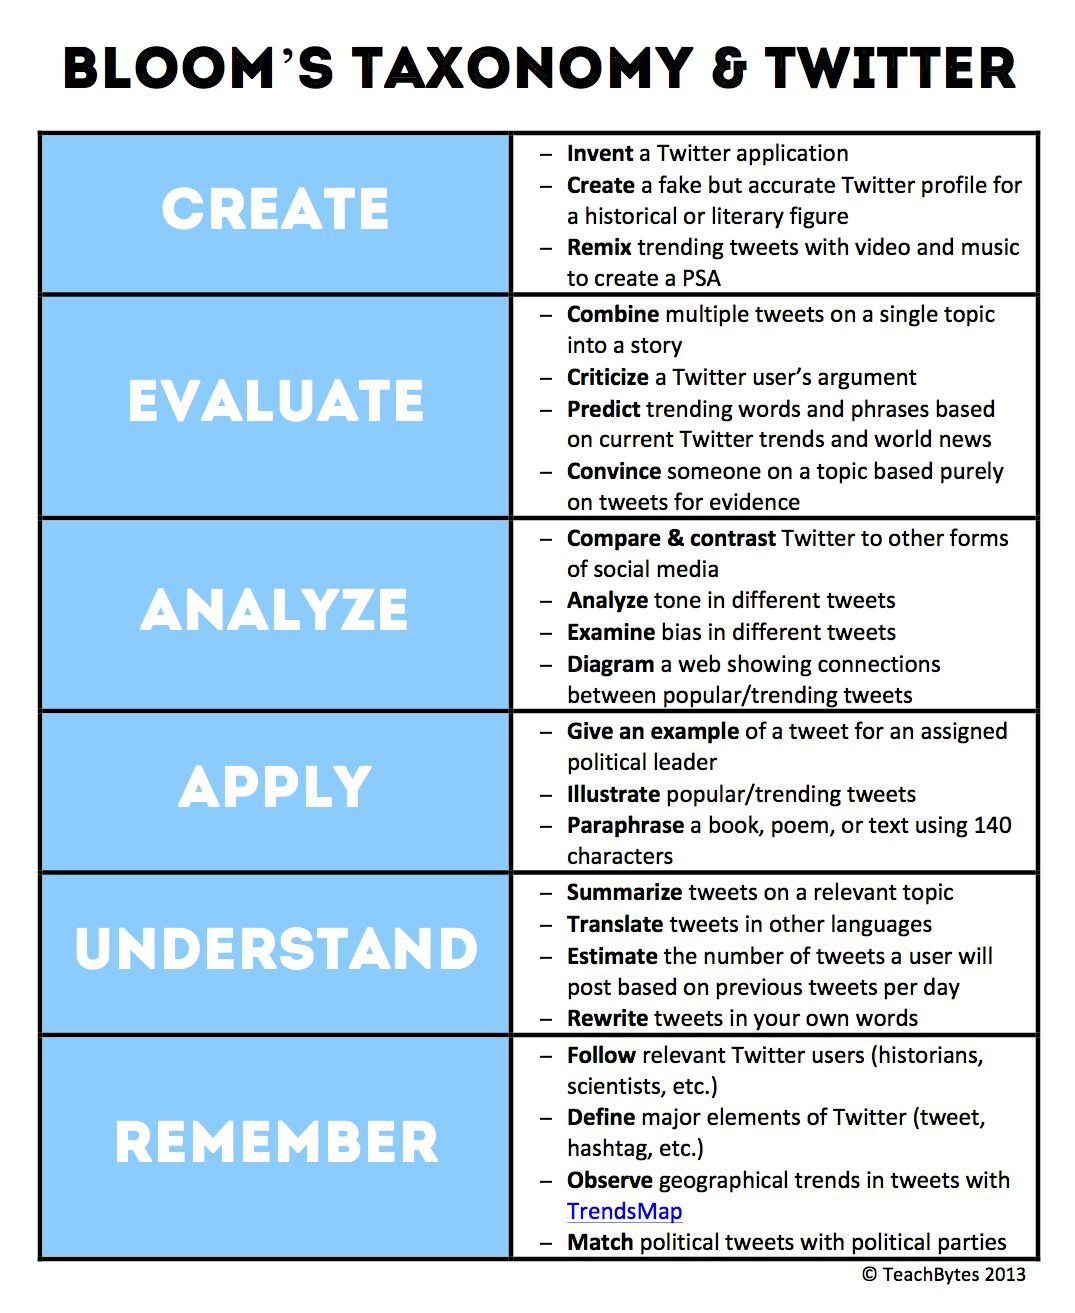 blooms taxonomy of education Bloom's taxonomy categorizes skills that students are expected to attain as  learning progresses originally published in 1956, the tool is named after  benjamin.